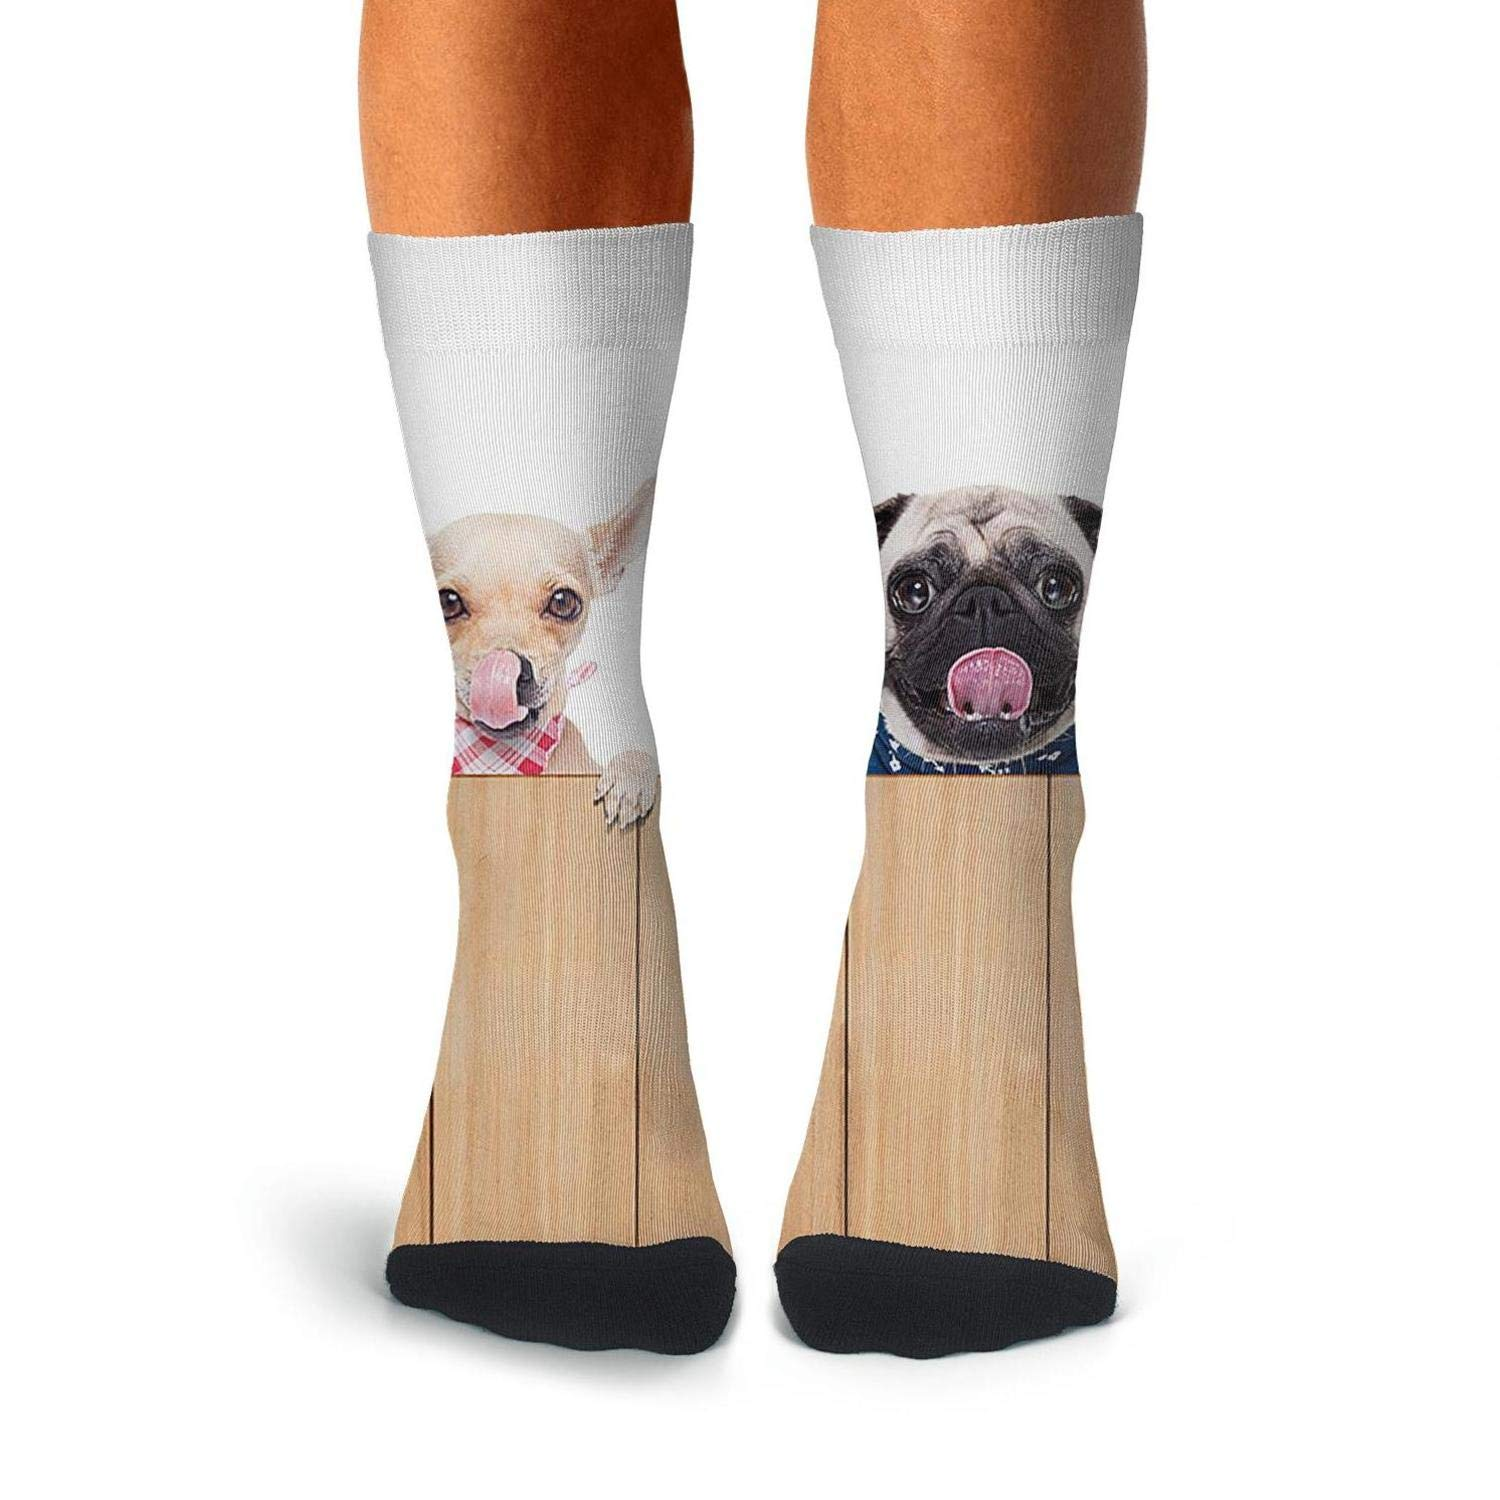 Knee High Long Stockings KCOSSH Hungry Dog On The Fence Crazy Calf Socks Cool Crew Sock For Men